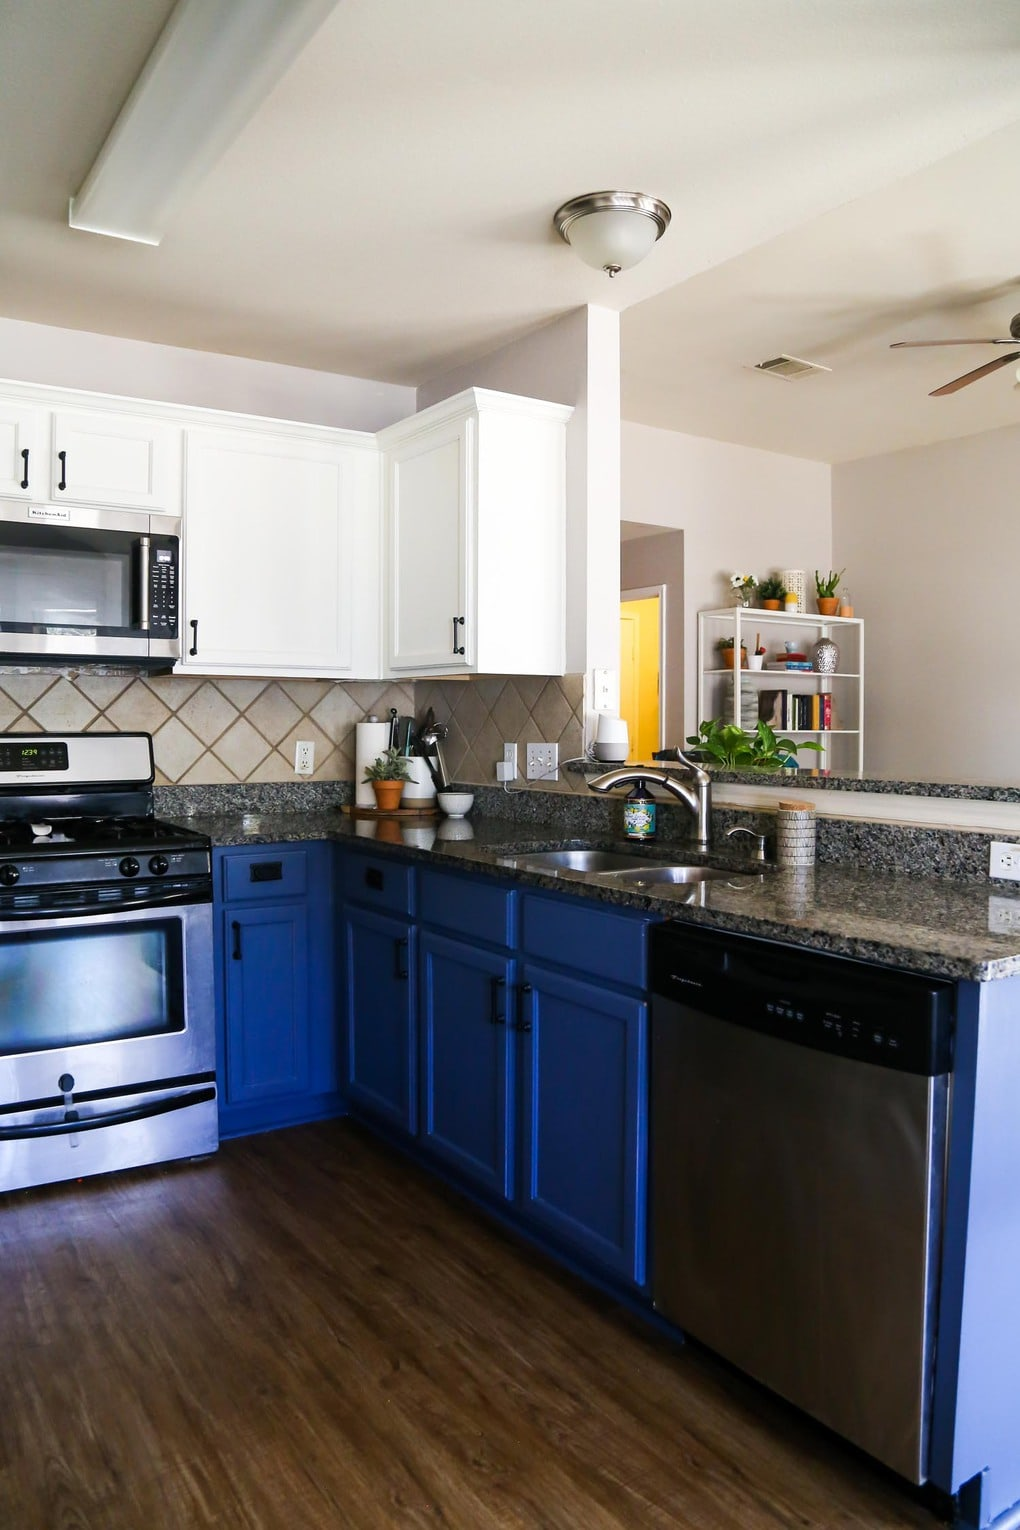 Kitchen with blue and white cabinets and Mohawk vinyl plank flooring on the floor